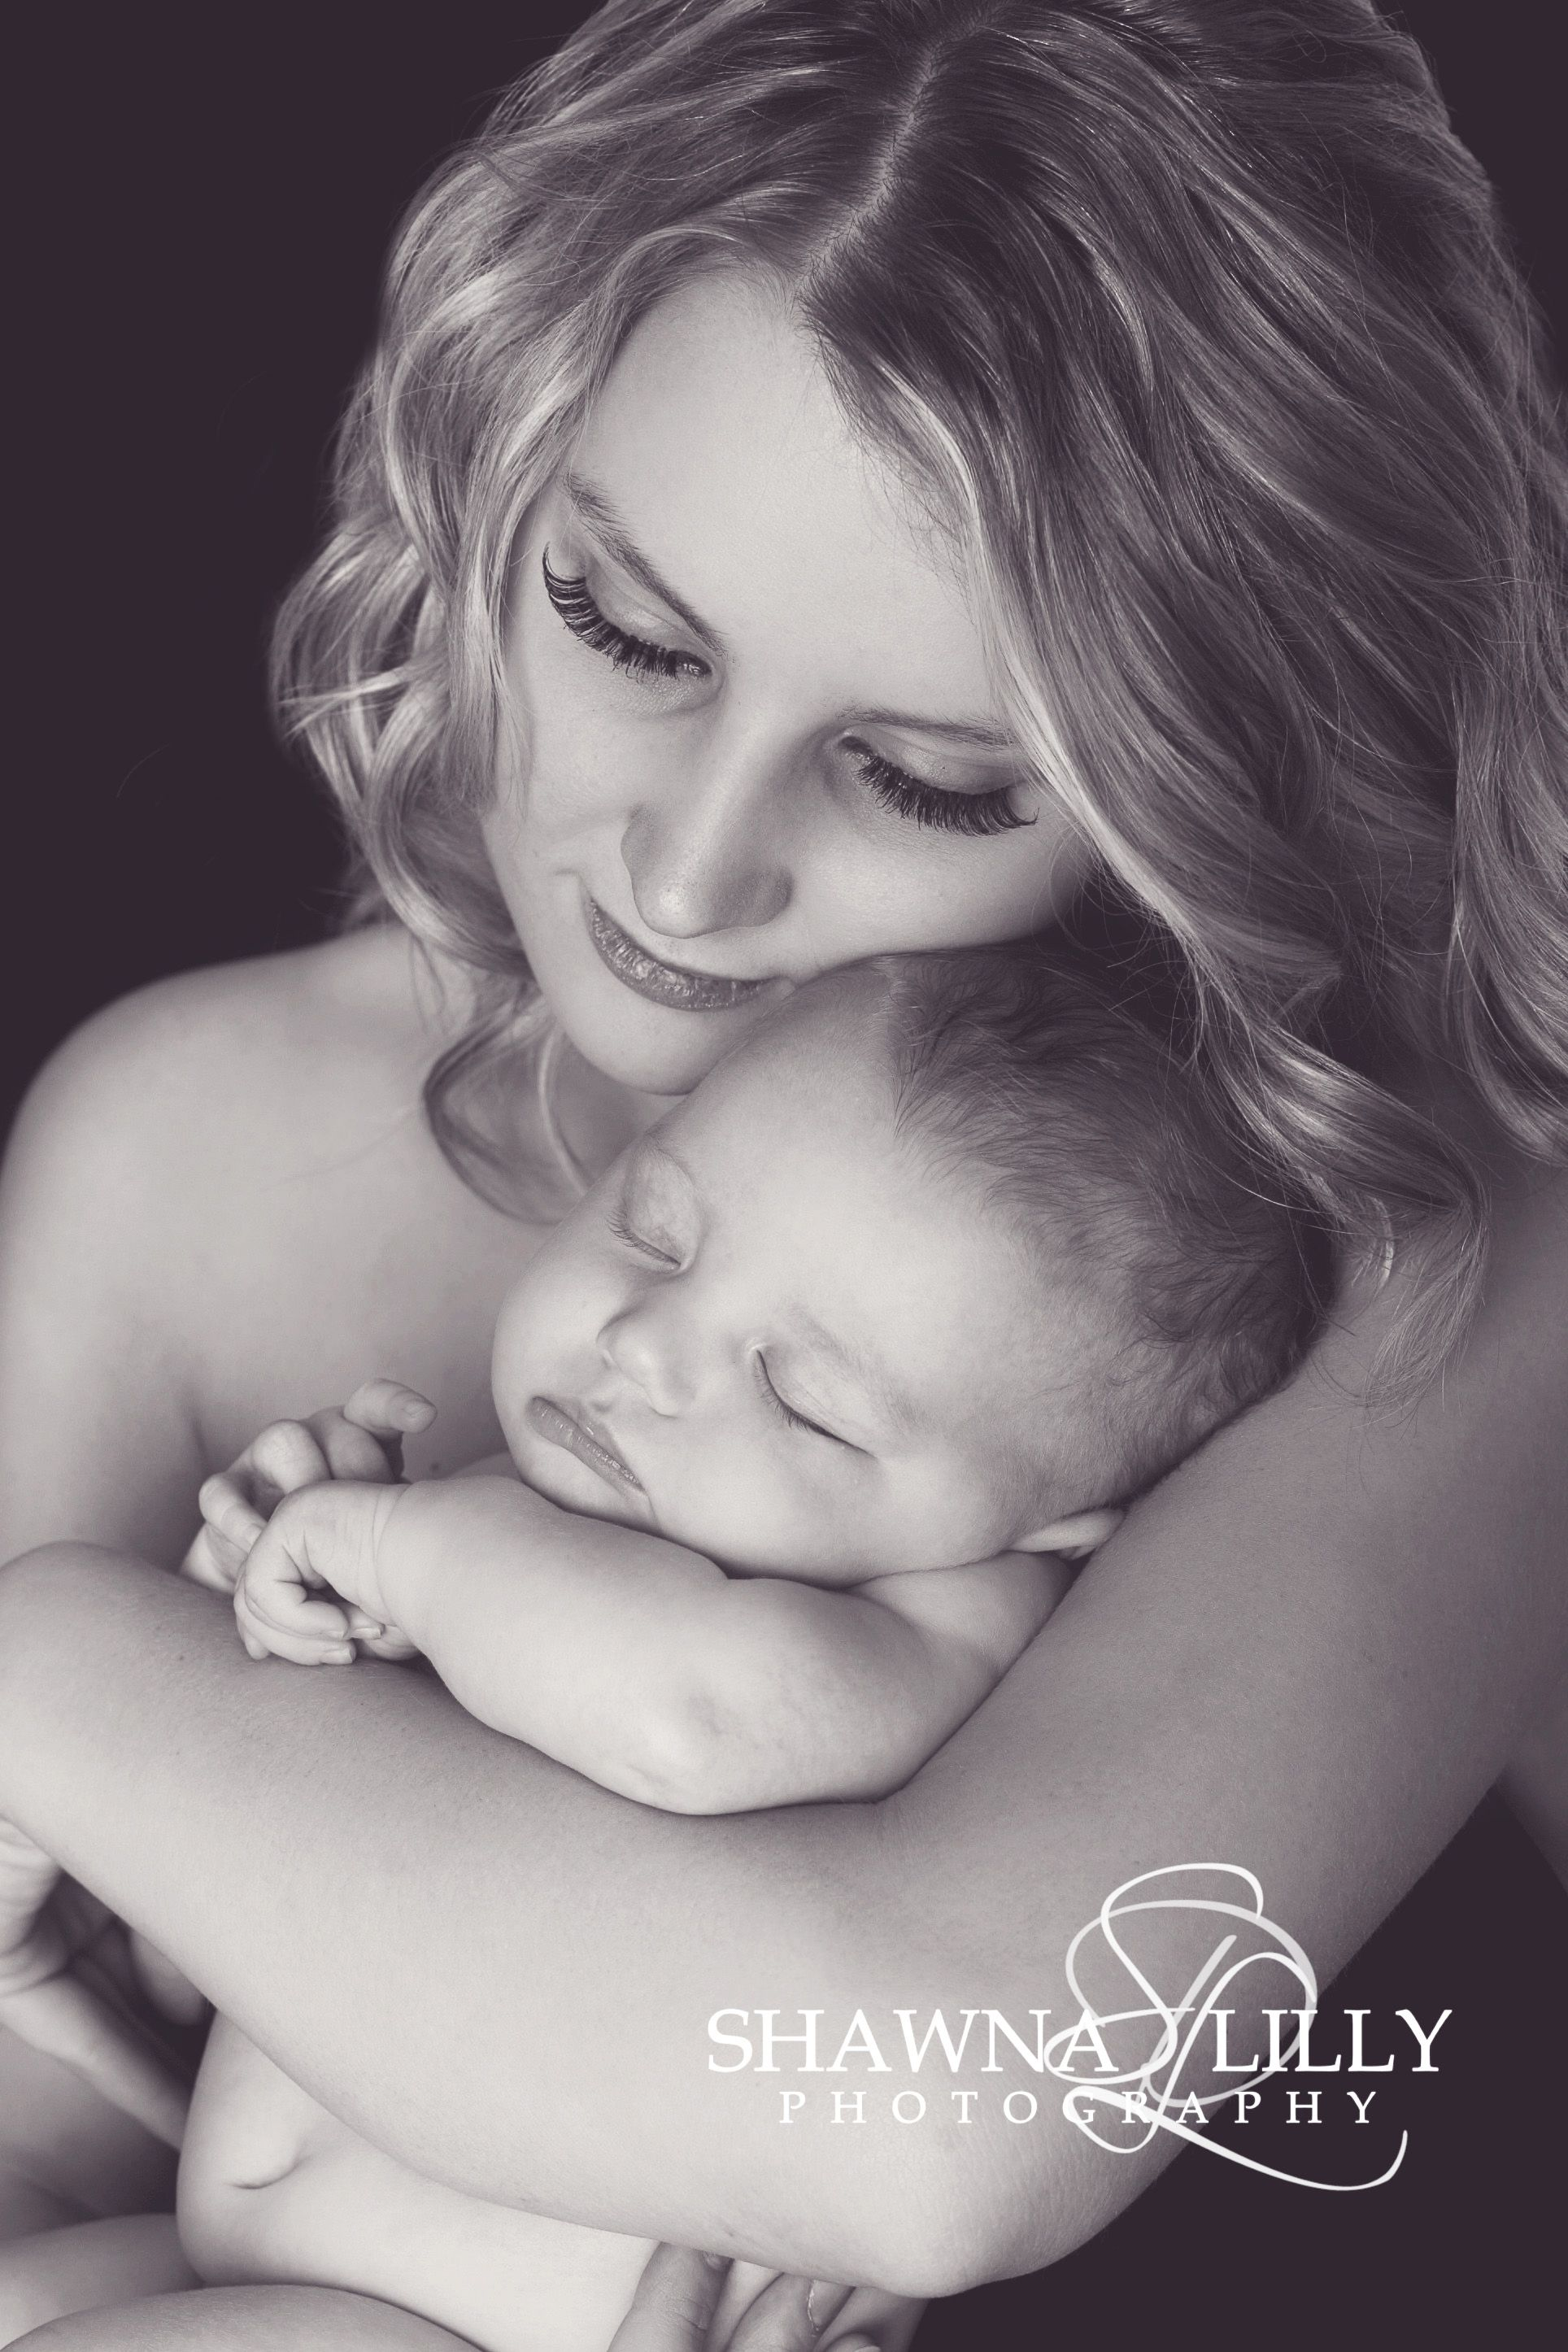 Sweet newborn pose with the new mommy newborn photography mom and baby photo lifestyle newborn photos